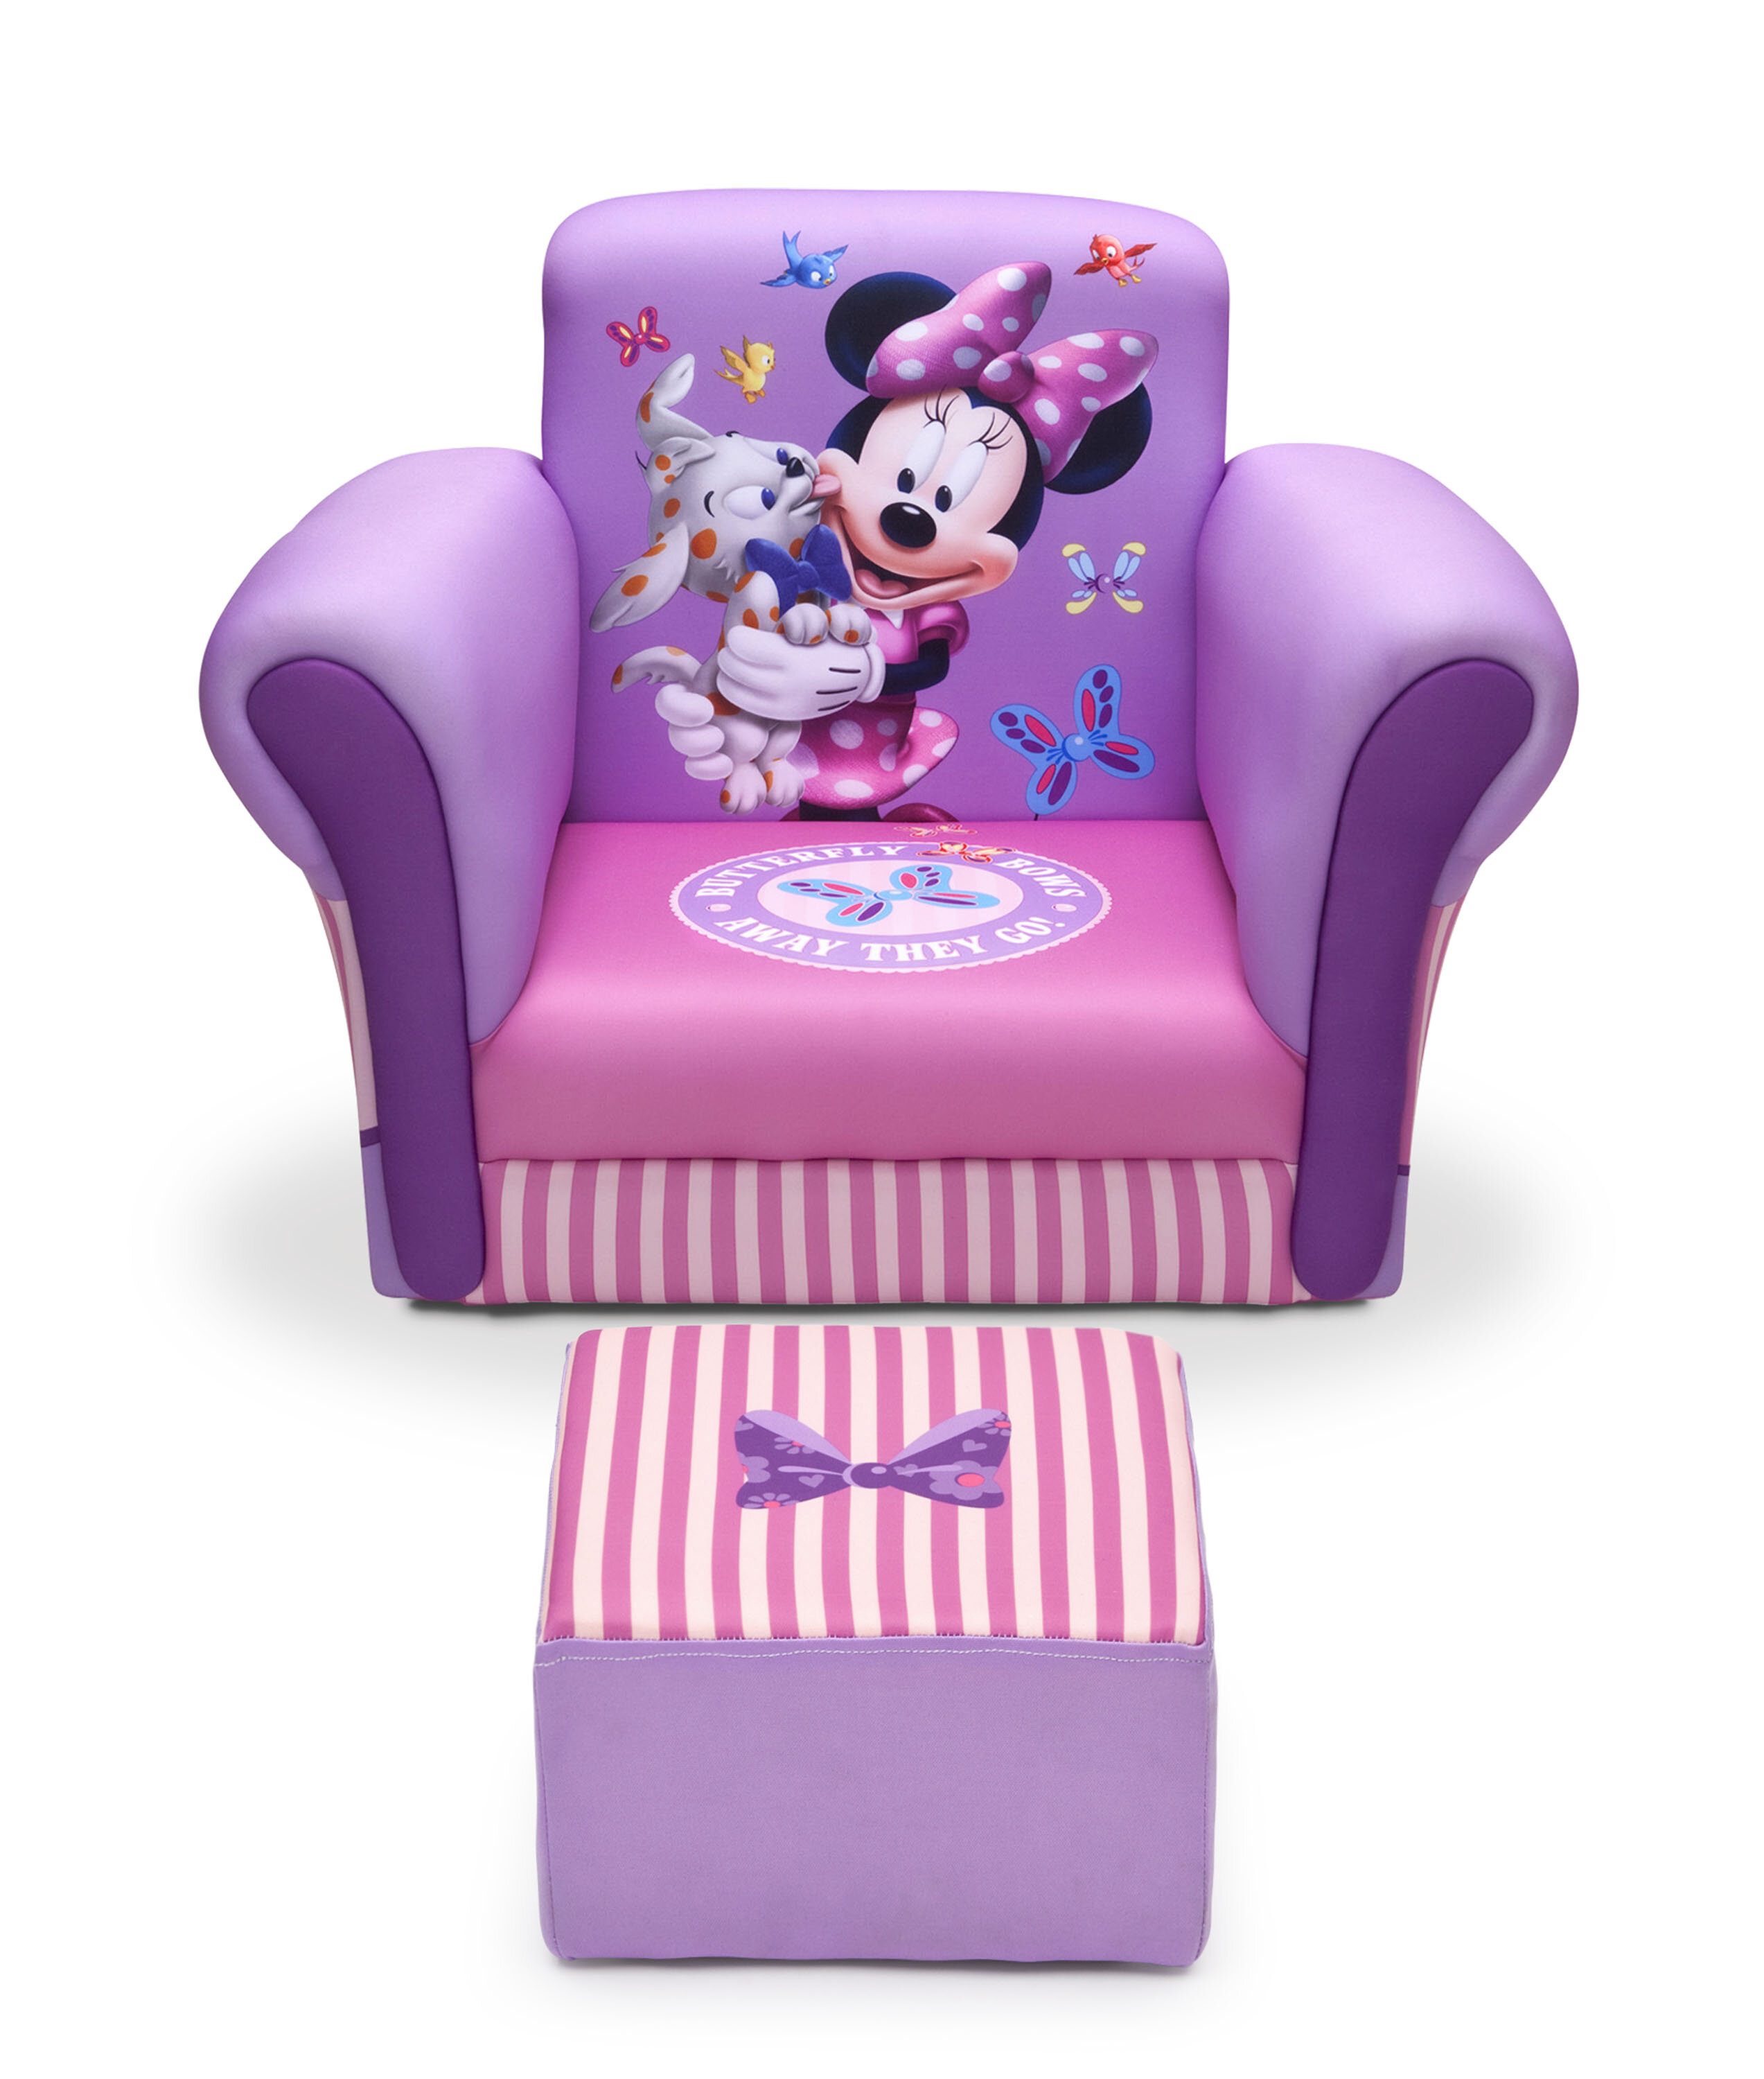 Superbe Delta Children Minnie Mouse Upholstered Kids Club Chair And Ottoman U0026  Reviews | Wayfair